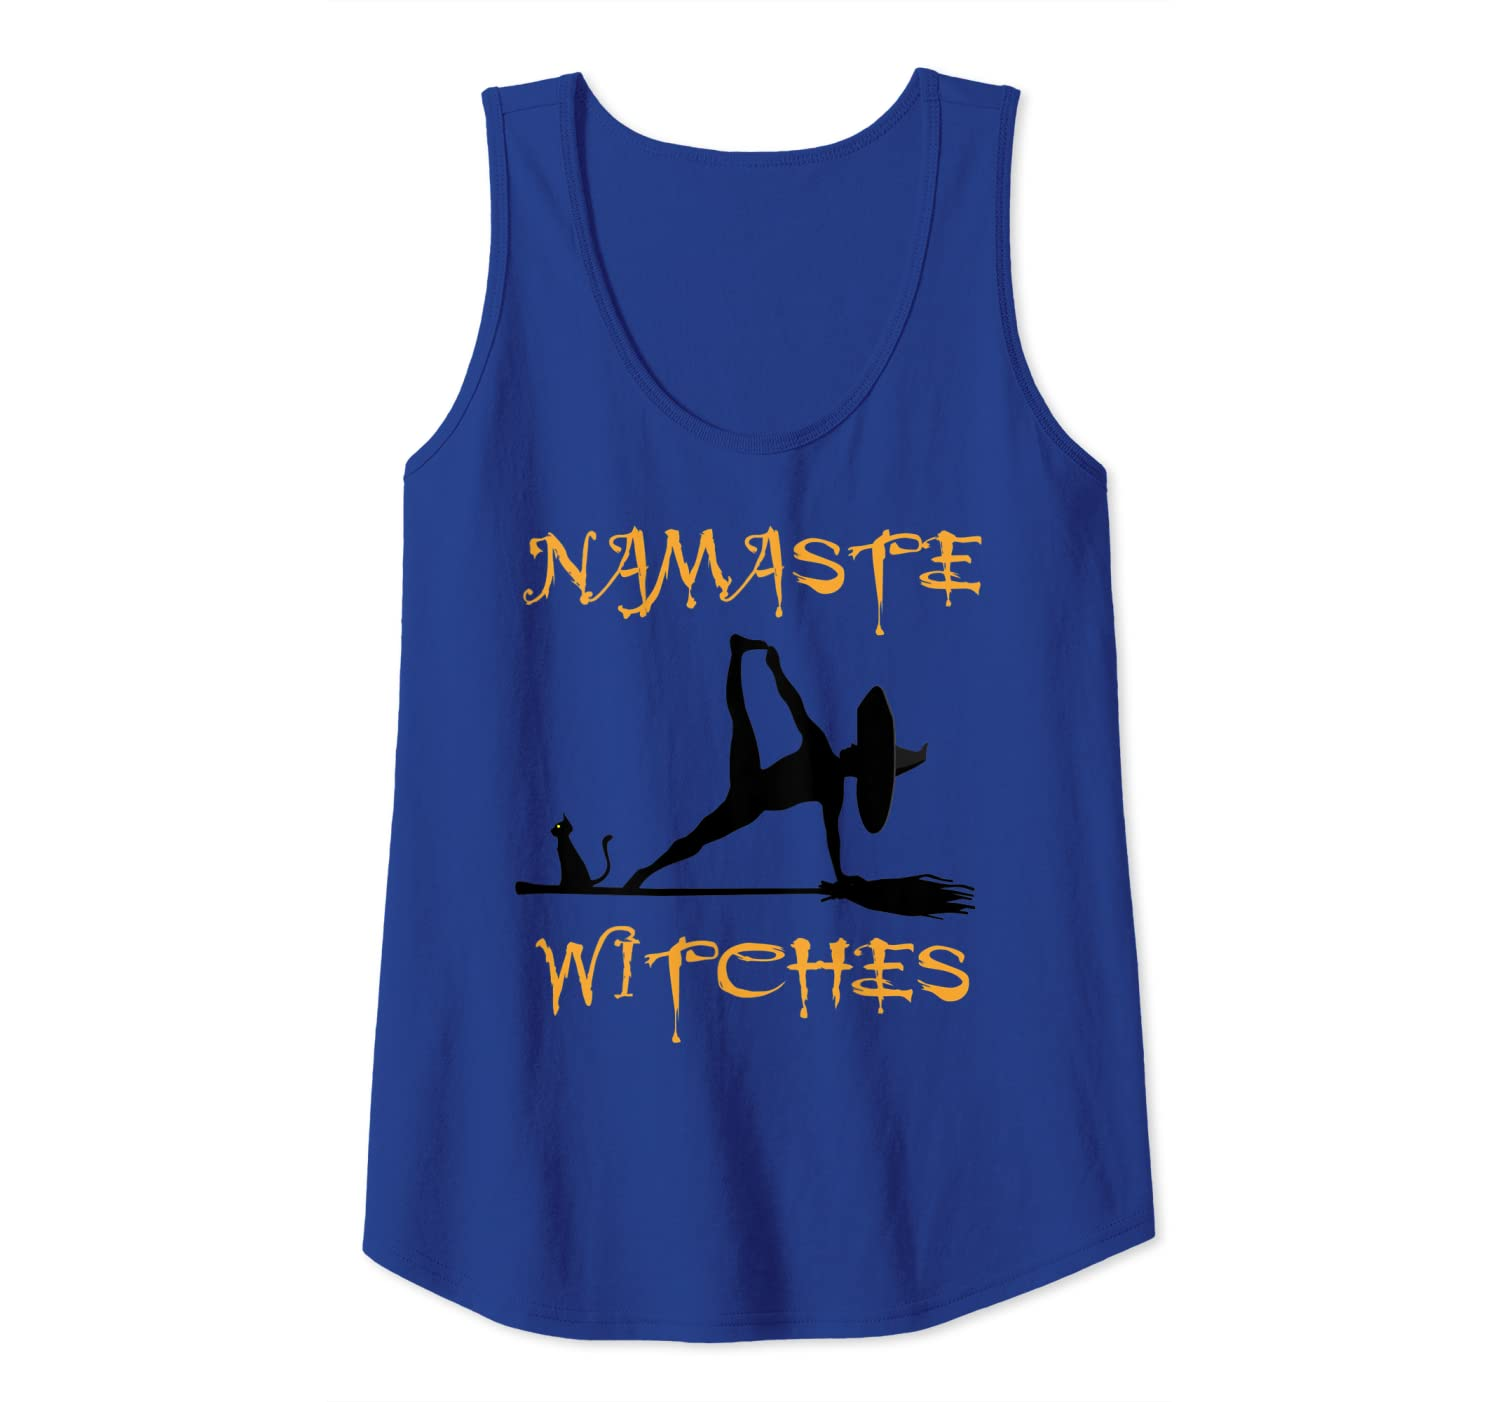 Womens Namaste Witches Shirt Cute Yoga Halloween Top for Women Tank Top